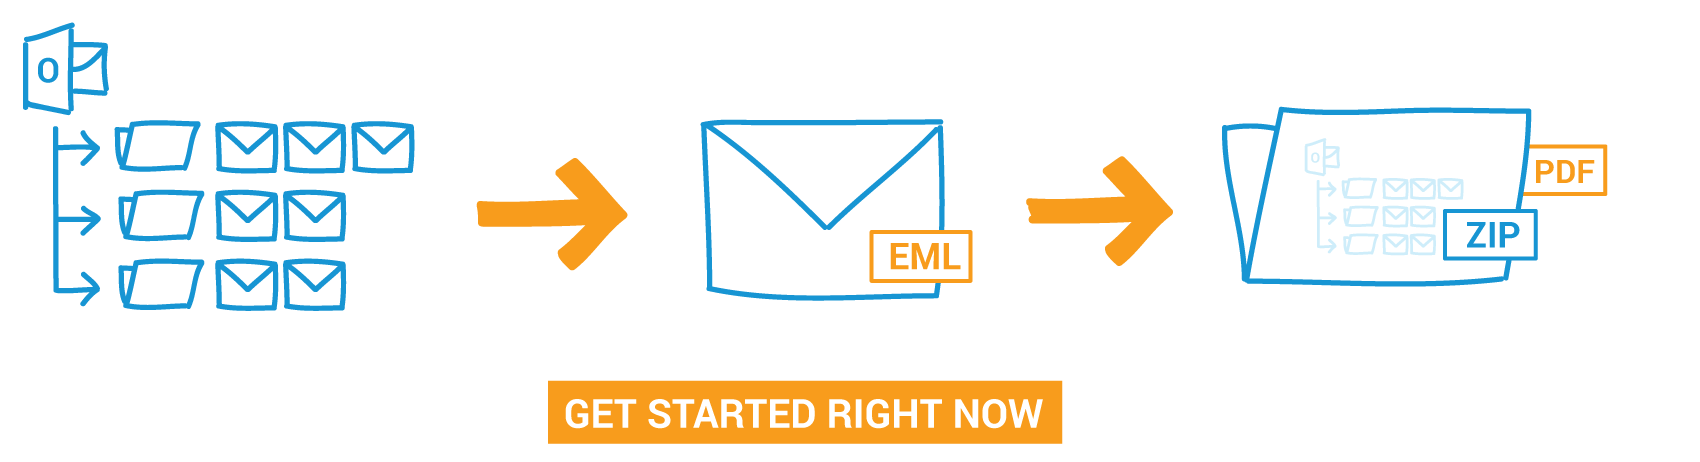 Eml e-mail files converted to PDF